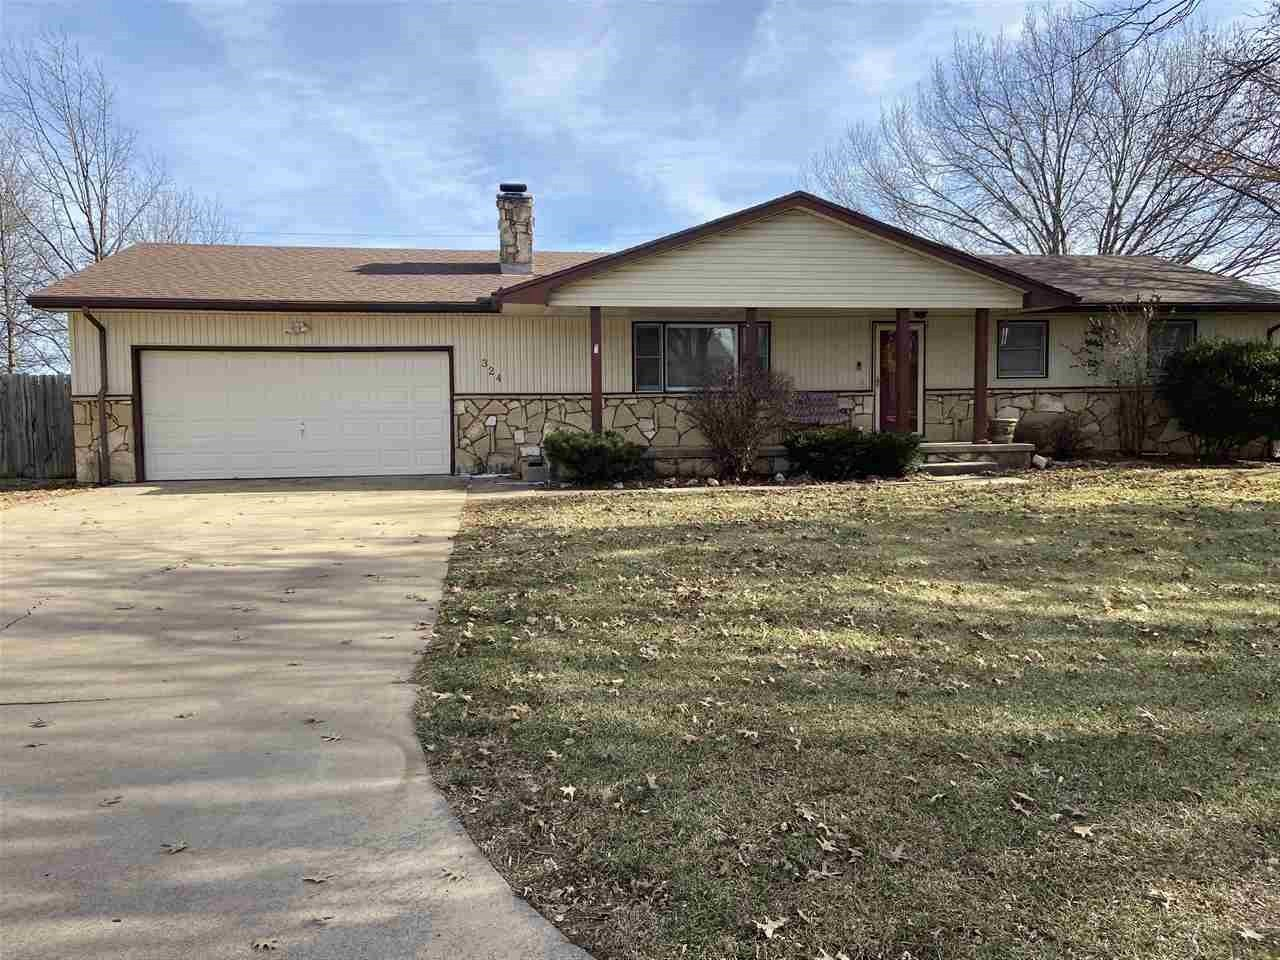 Lovely Home in Rosehill Ks. Over 2,600 square feet finished in this Ranch home. Located on a quiet street. 3 bedrooms, 2 baths on main floor and 3 additional rooms finished in the basement along with a full bath and safe room. 2-Car oversized garage. Easy maintenance Vinyl/Metal siding .2 wood burning fireplaces, one on the main floor living room and one in the family room in the basement. Laundry also located in the basement with washer/dryer included. Kitchen comes complete with all appliances including range/oven, dishwasher, refrigerator and microwave. You'll love watching the sun come up on your covered back deck, also Fenced back yard and storage shed. Updates through out including new flooring in all 3 bedrooms. All appliances stay with property including washer/dryer. Come take a look, you won't be disappointed. Will sell quick, don't miss out!!